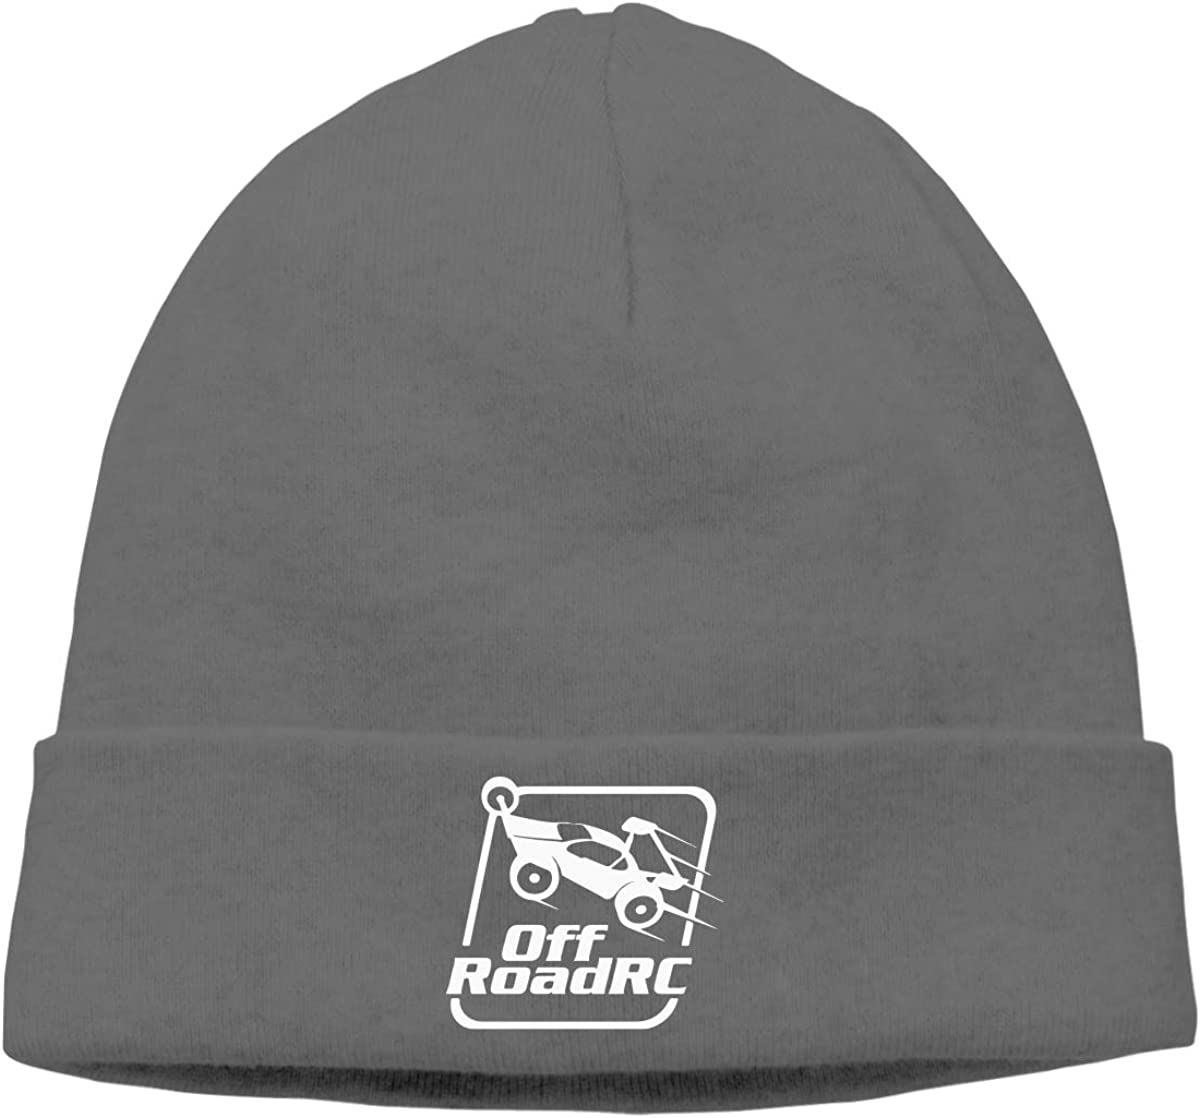 Unisex Off Road RC Soft Knit Caps